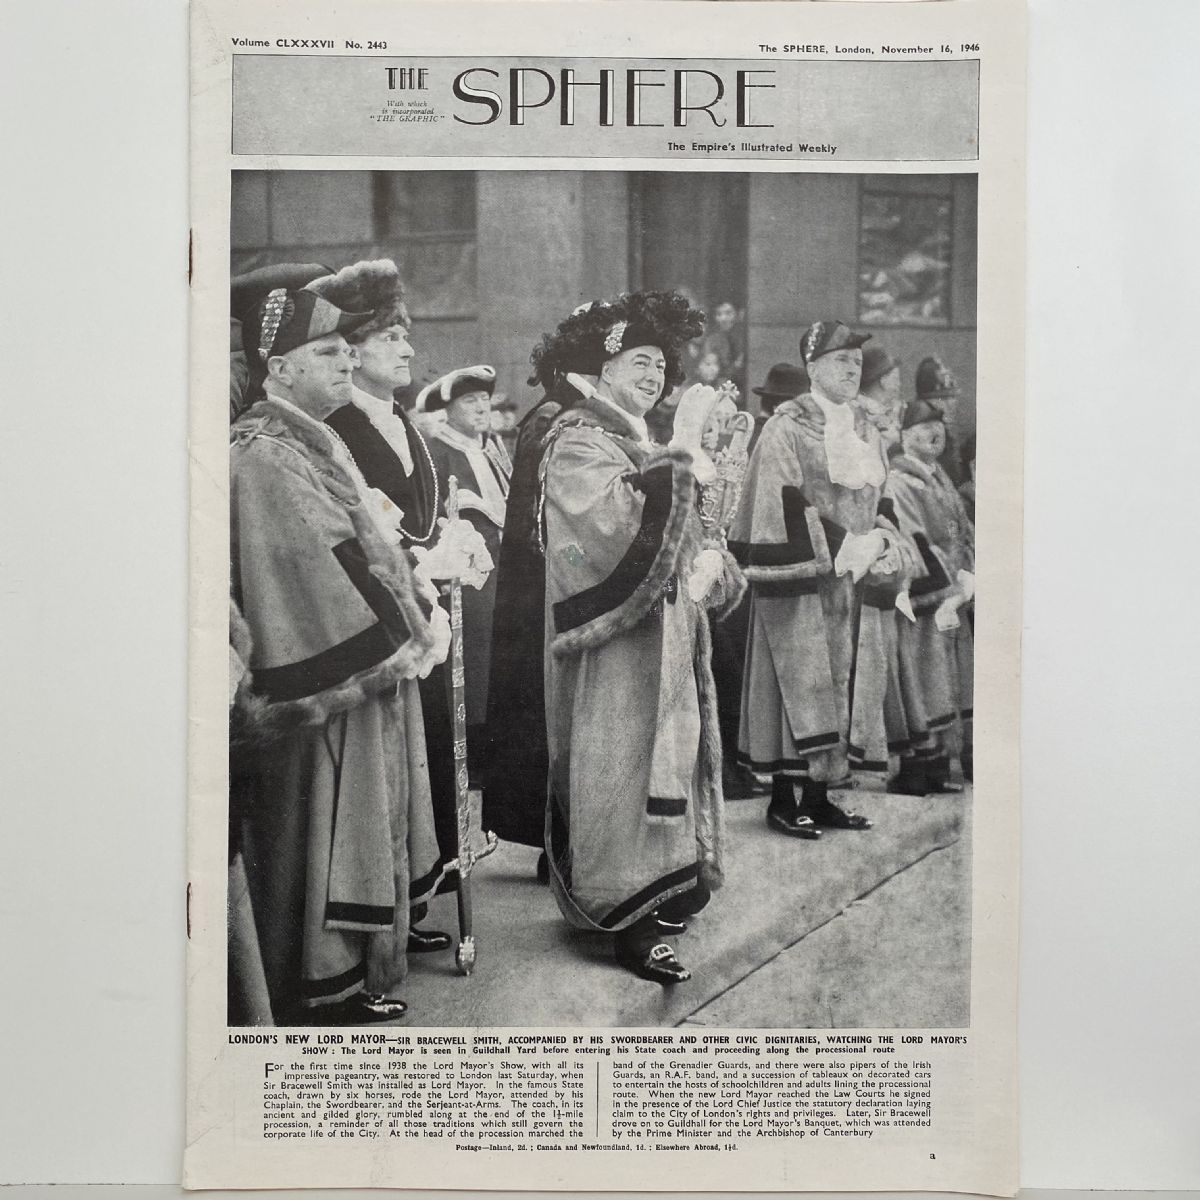 THE SPHERE The Empire's Illustrated Weekly. November 16, 1946. No.2443